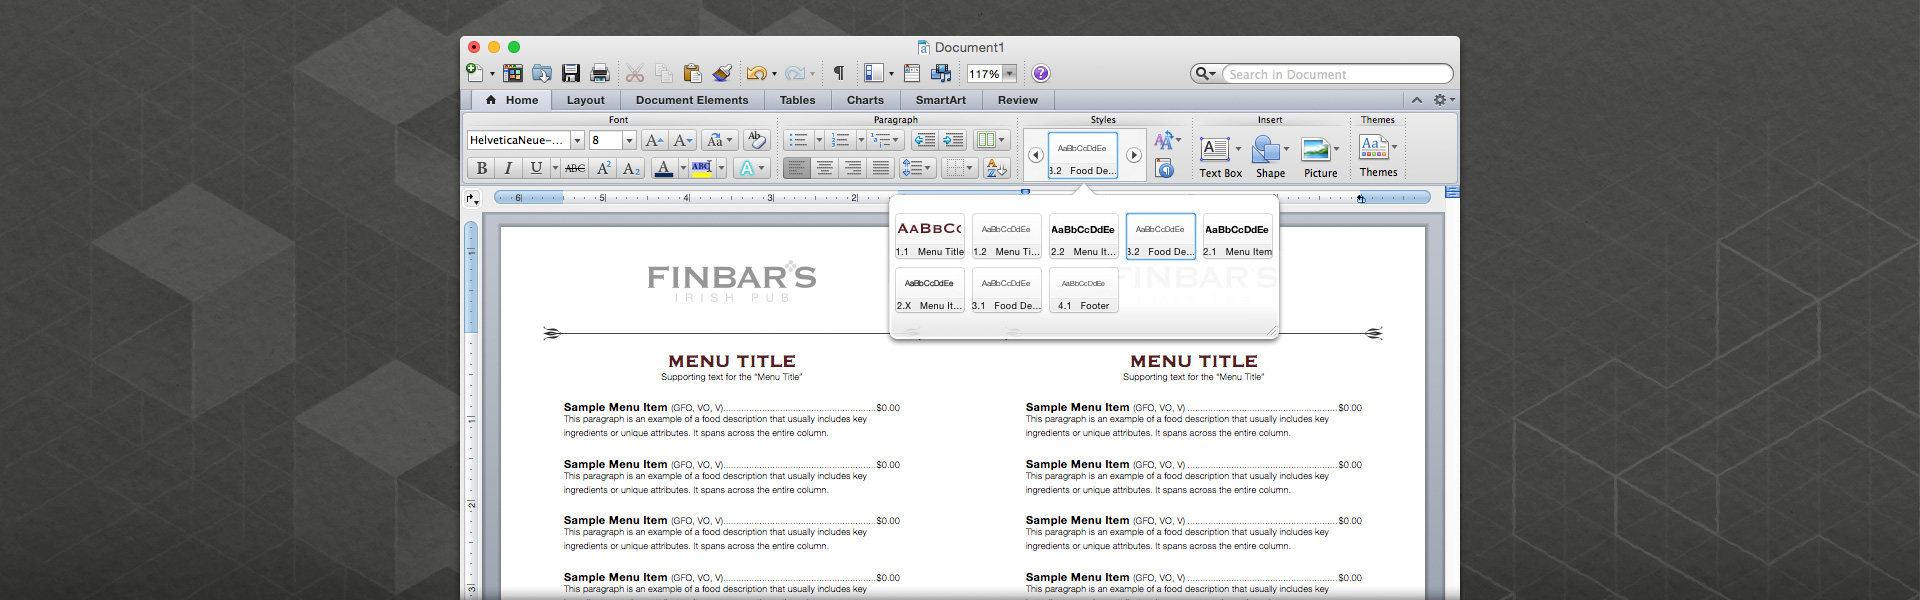 Screen shot of an MS Word template for the table-top food menu at Finbar's Irish Pub. The image also shows the set of paragraph styles that were built into the file.